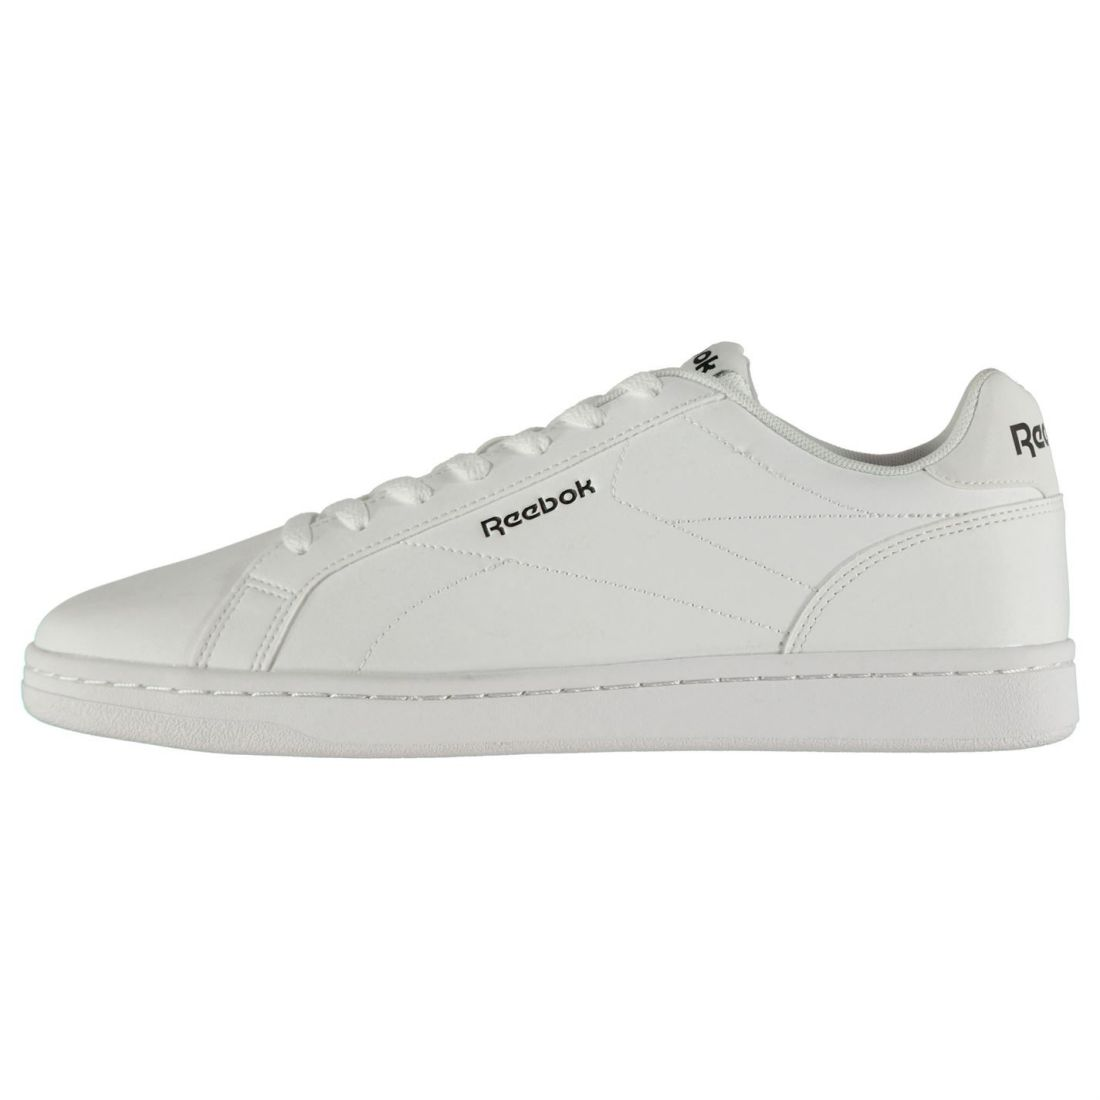 Reebok Complete Leather Sneakers Mens Gents Court Laces Fastened Padded Ankle